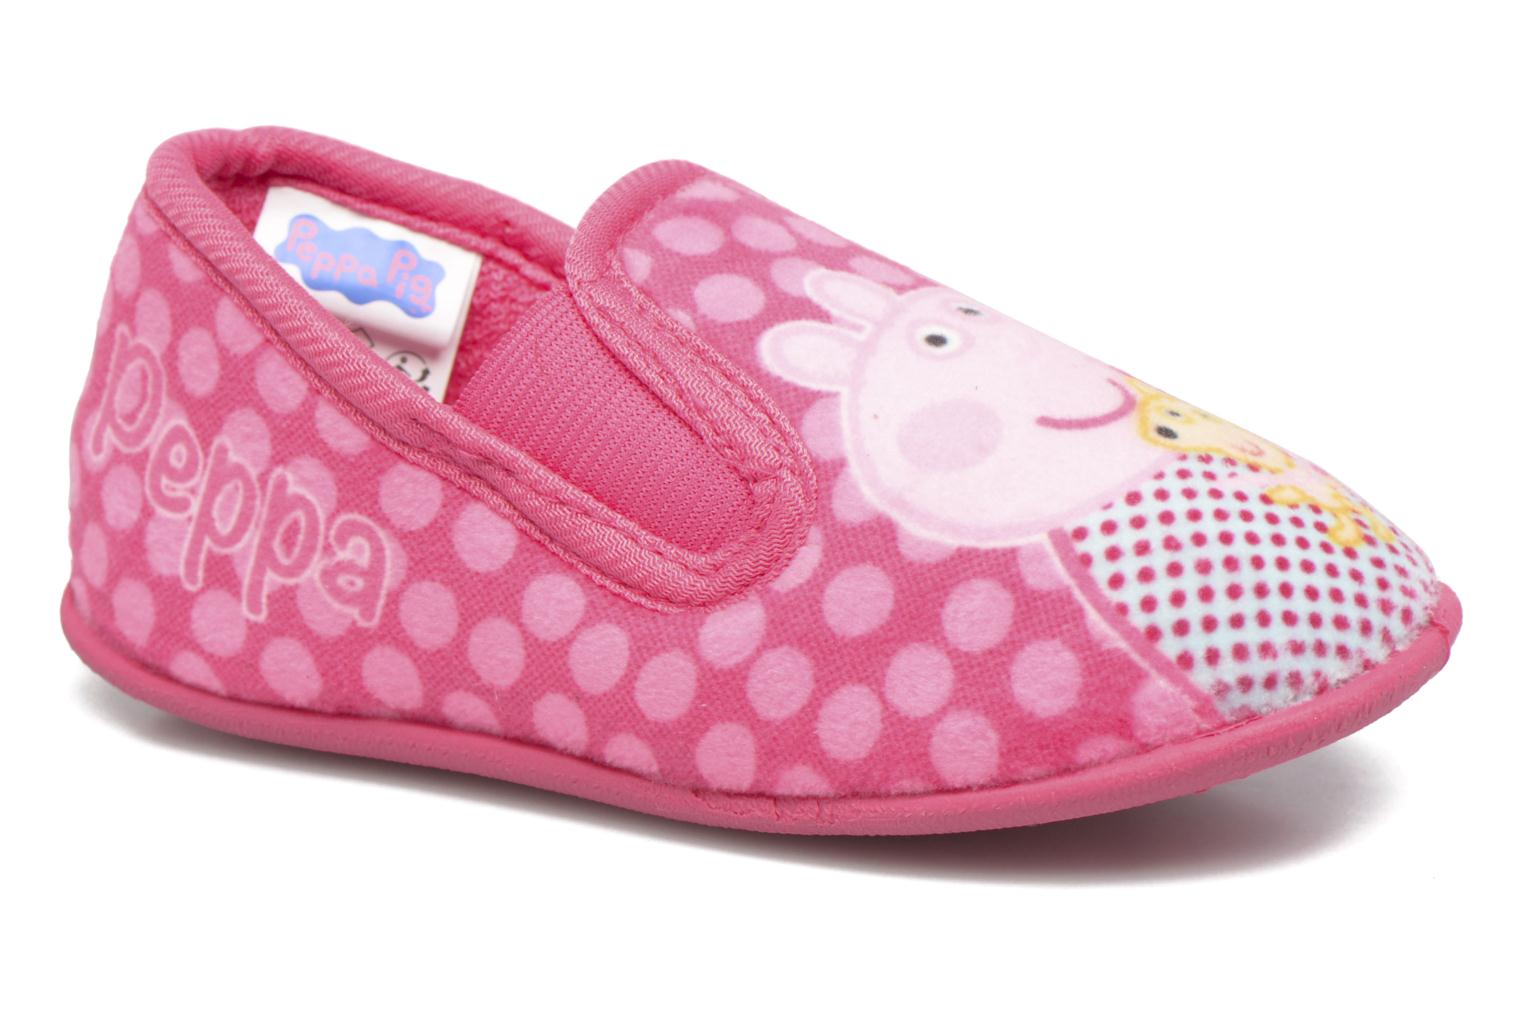 Chaussons Peppa Pig PP Romy Rose vue détail/paire